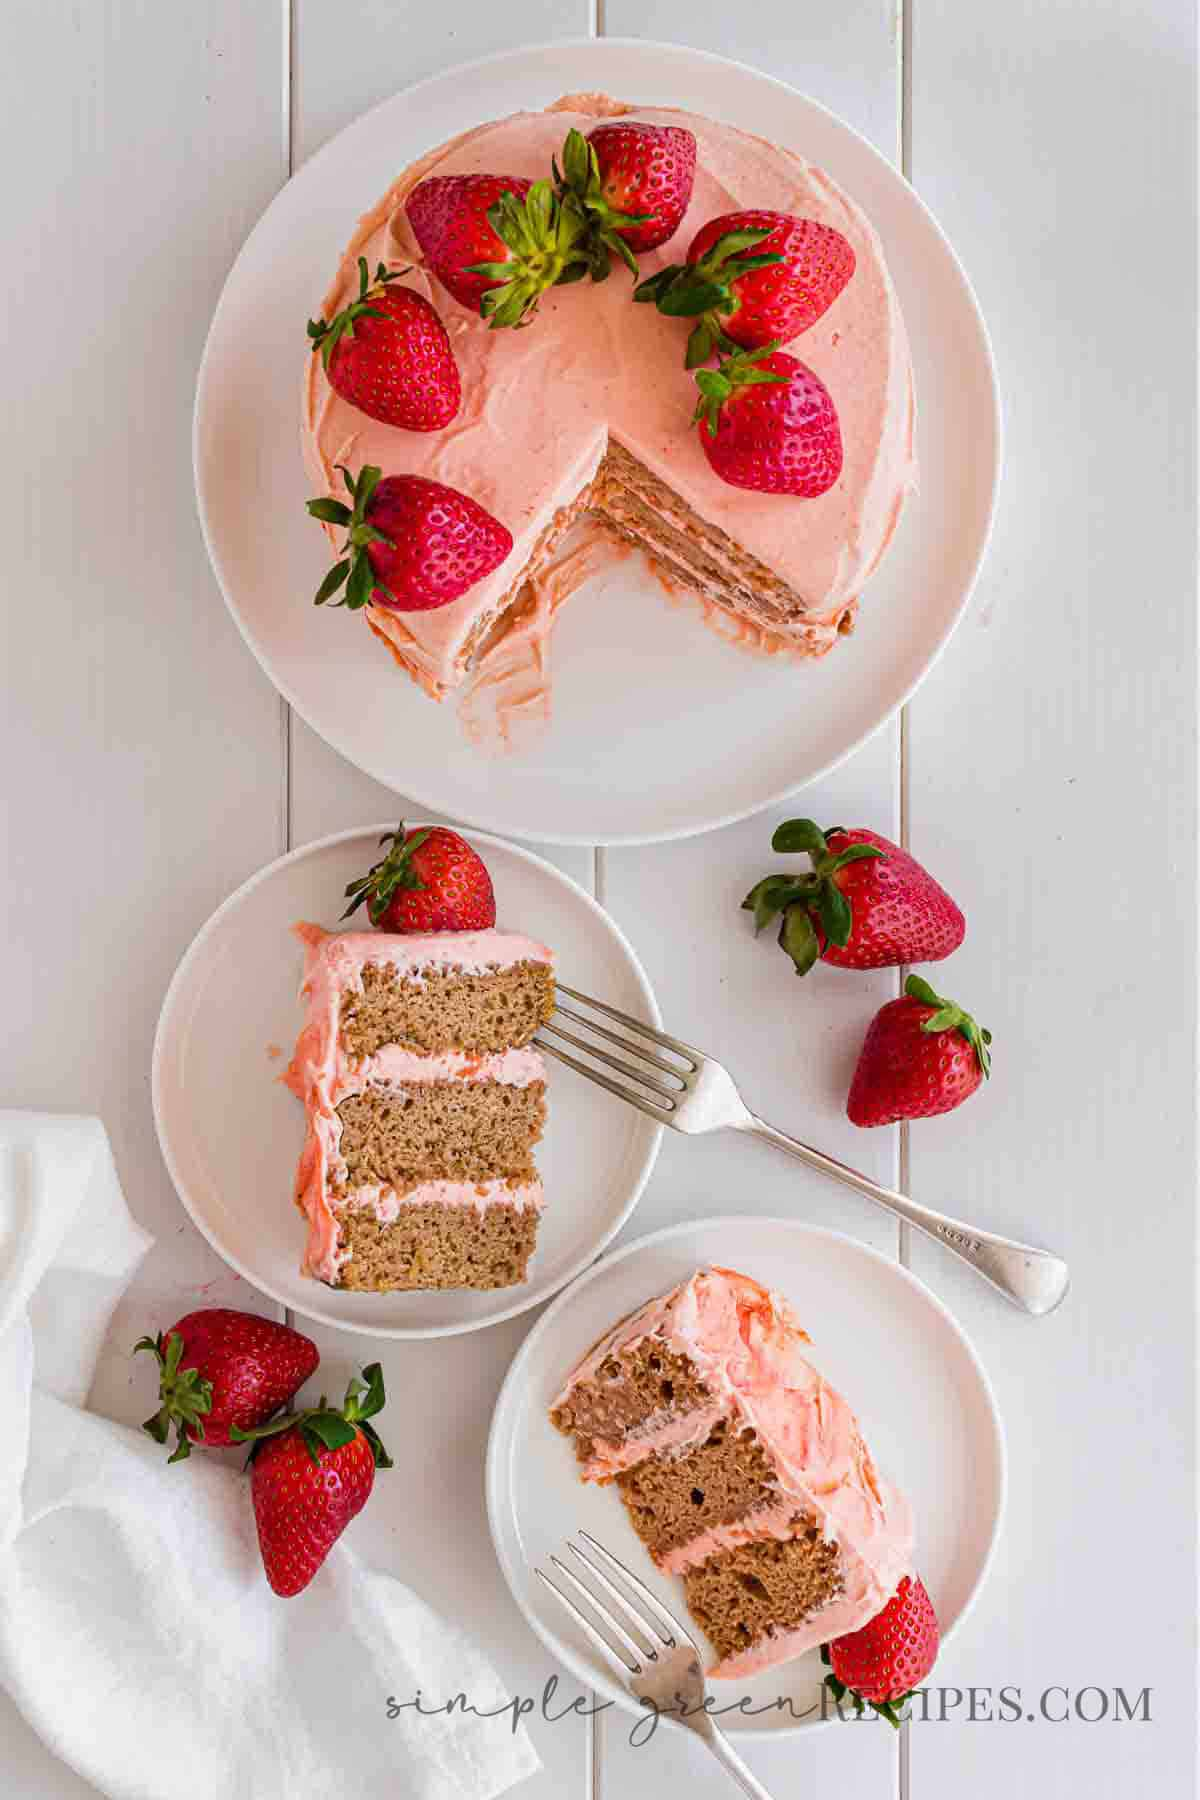 Cut Strawberry cake on a white plate, next to two slices of the cake on white plates.